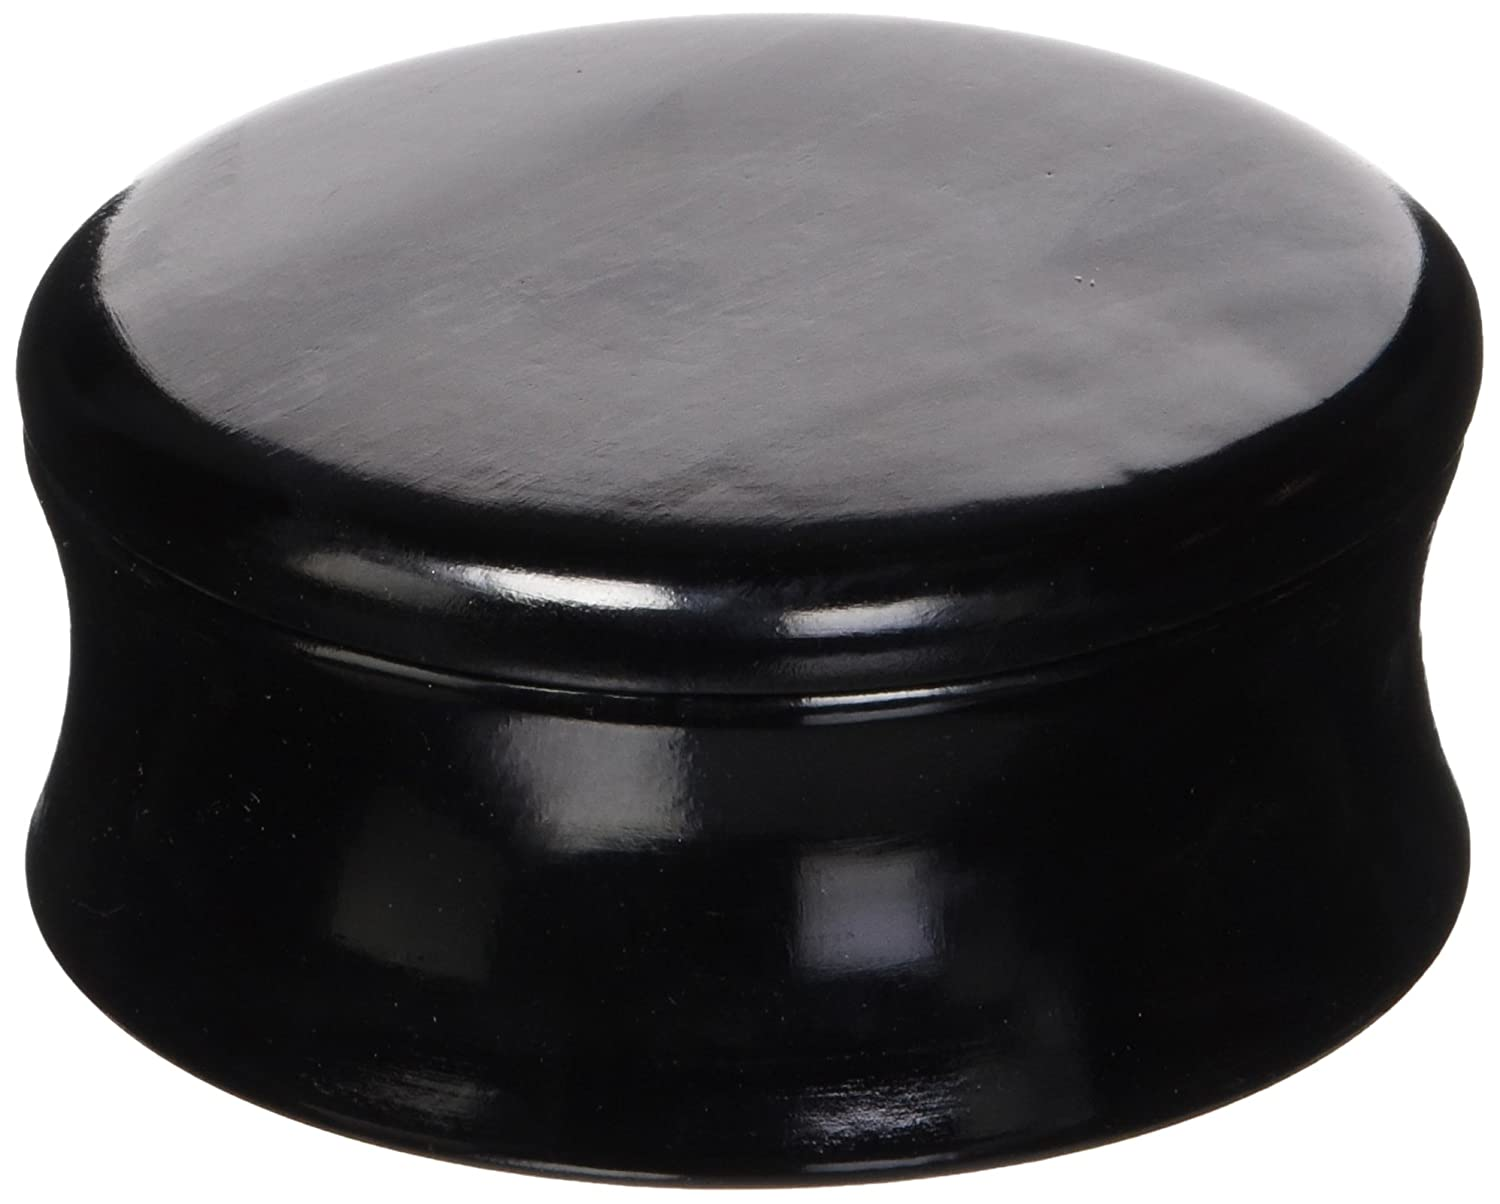 Genuine Mango Wood Shave Soap Bowl #4 - Black Laquer from Parker Safety Razor